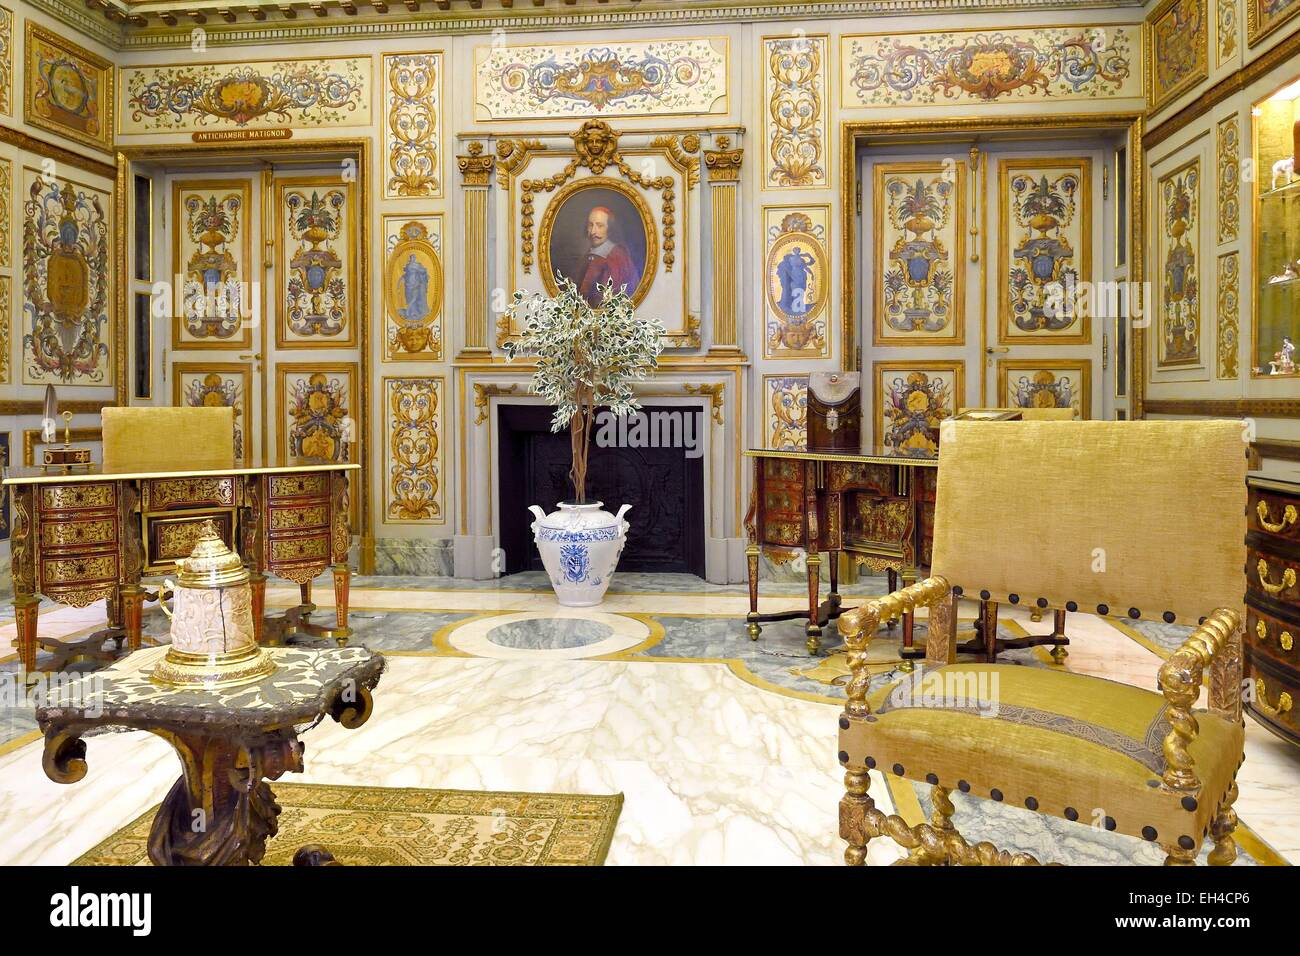 Principality of Monaco, Monaco, the Rock, the royal palace, the salon Mazarin - Stock Image